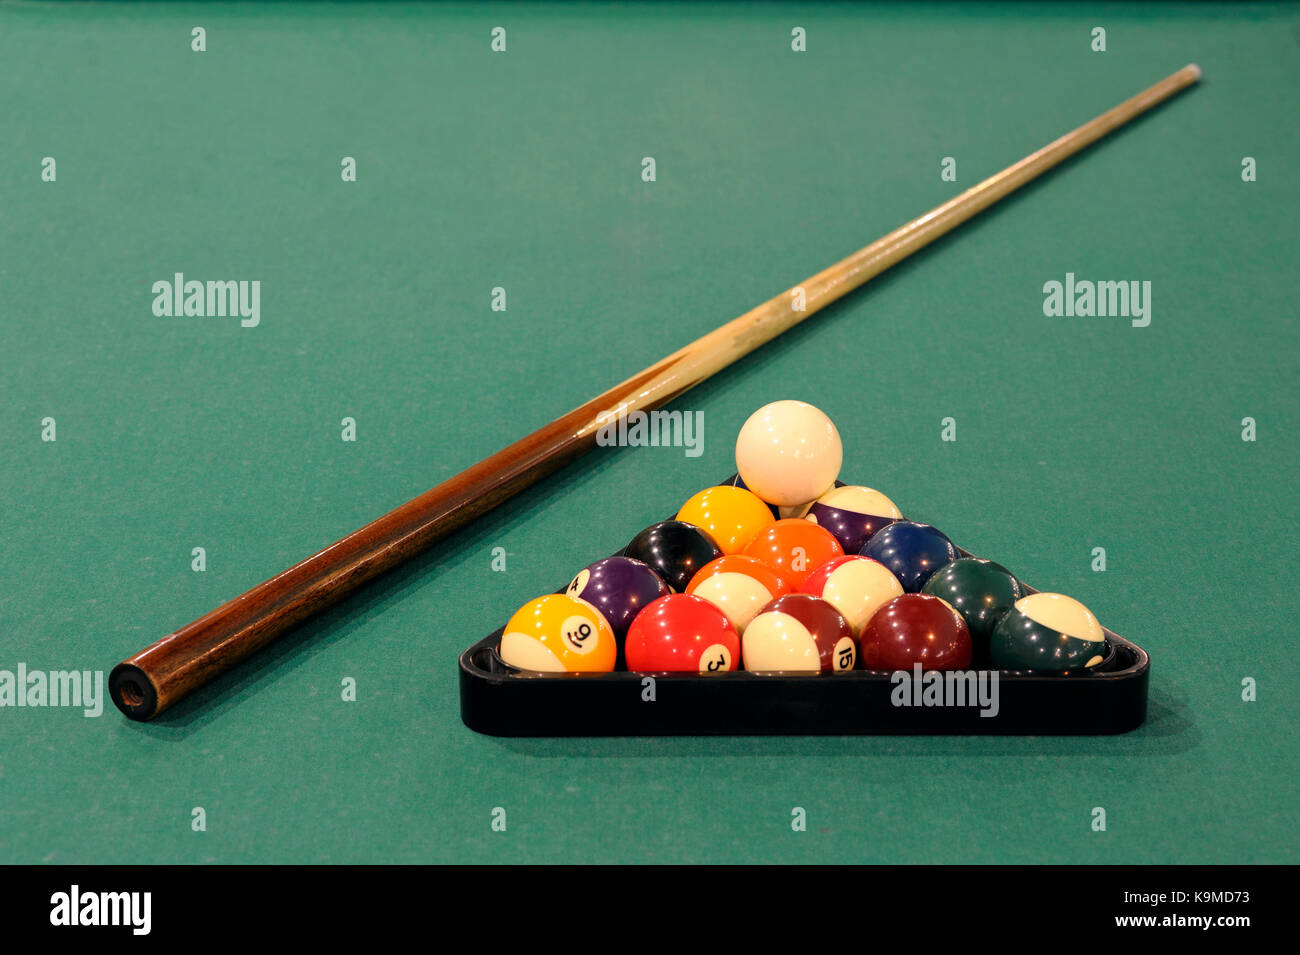 A Cue Stick And Balls On A Pool Table Stock Photo Alamy - Pool table stores in maryland